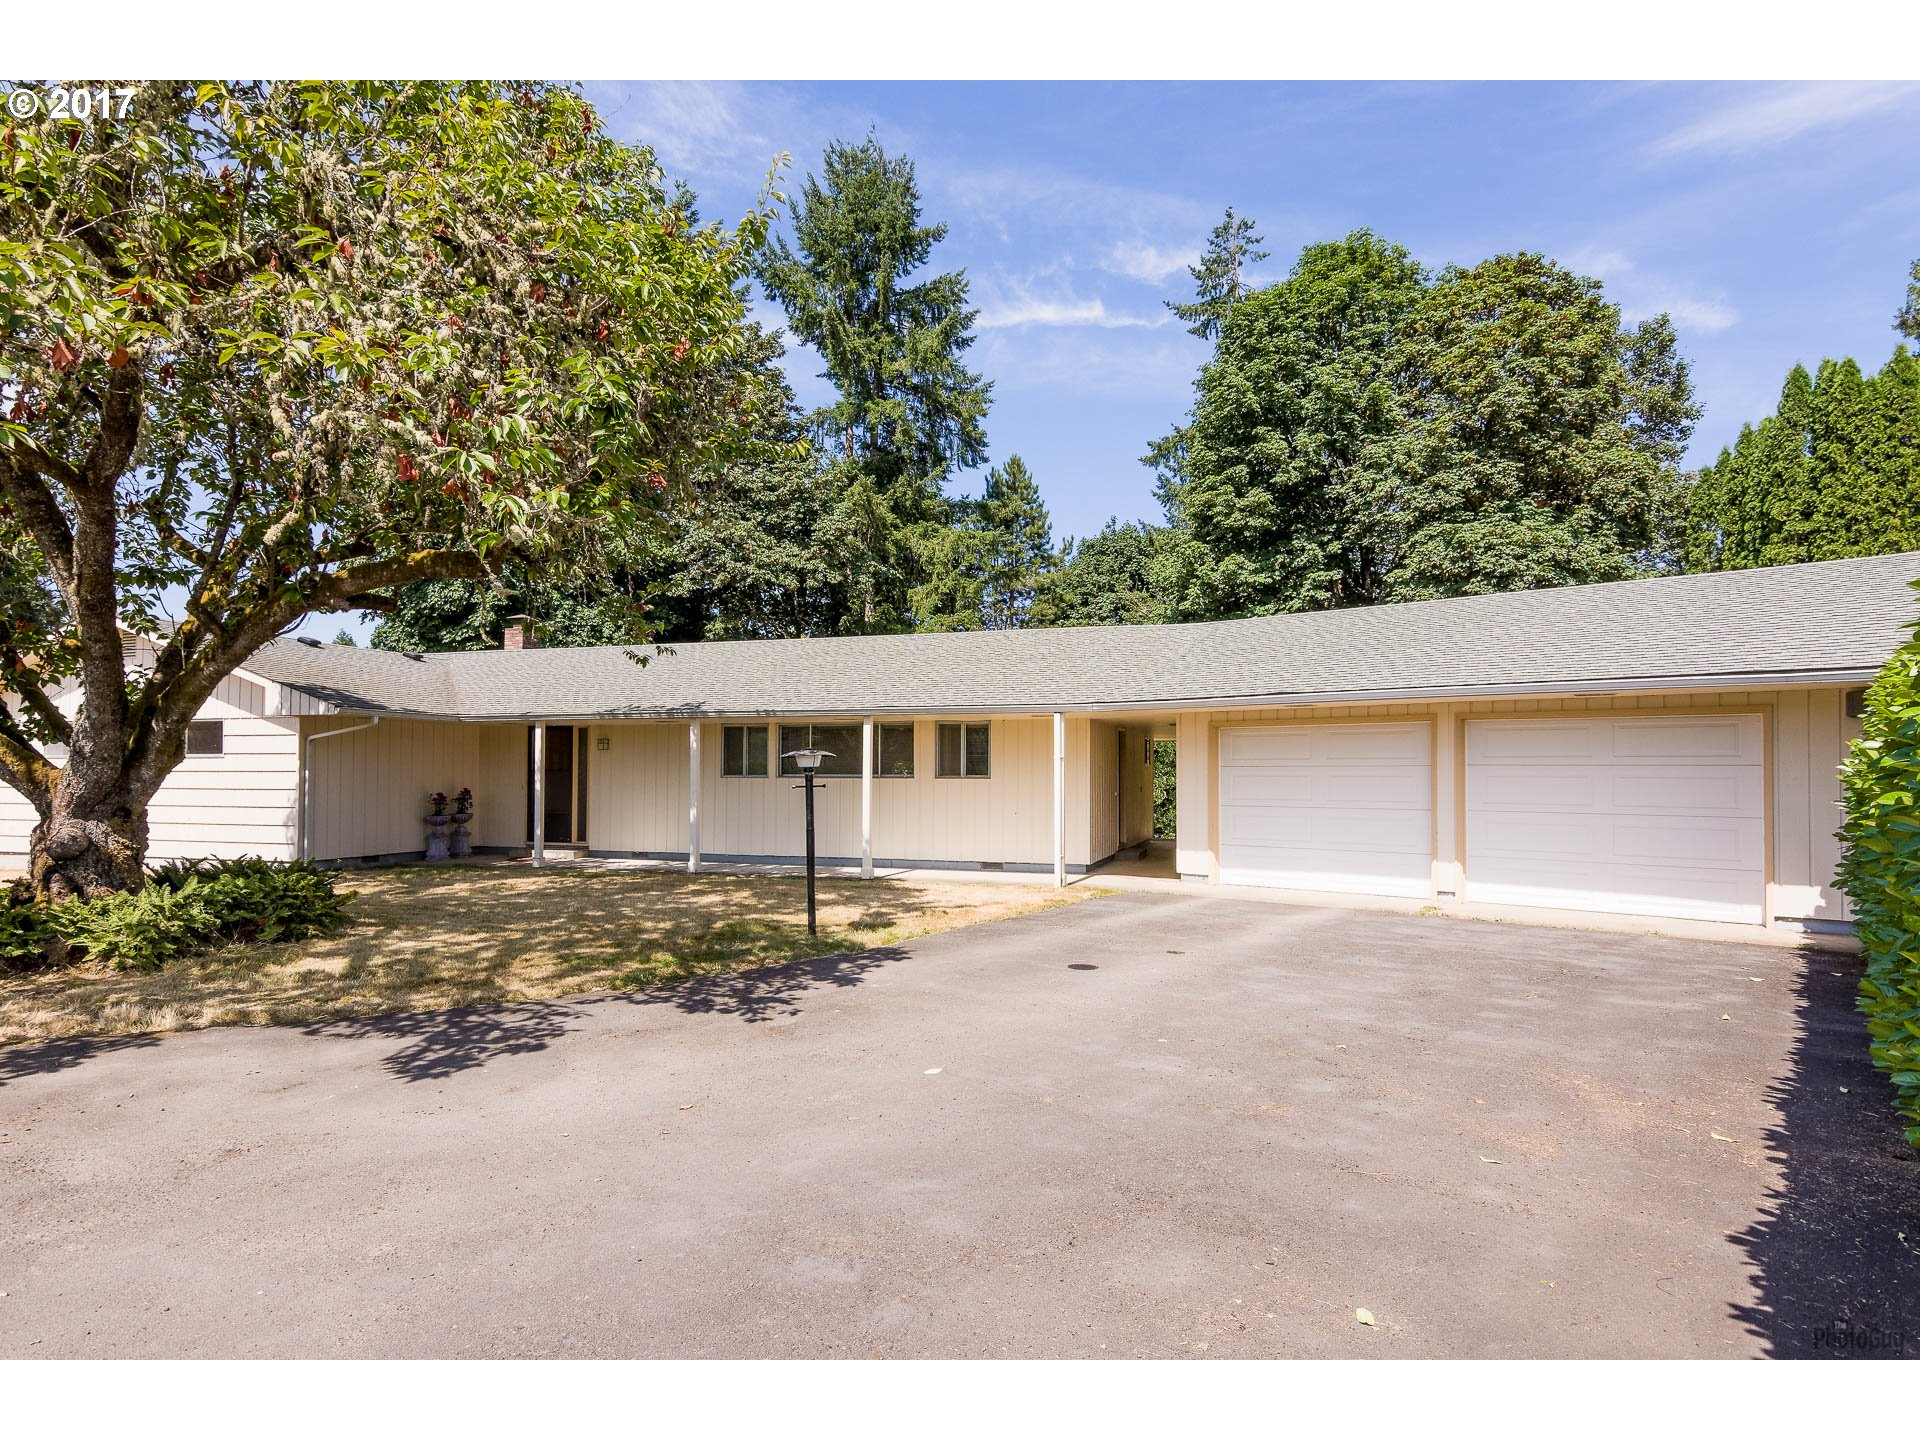 37931 M J CHASE RD, Springfield, OR 97478